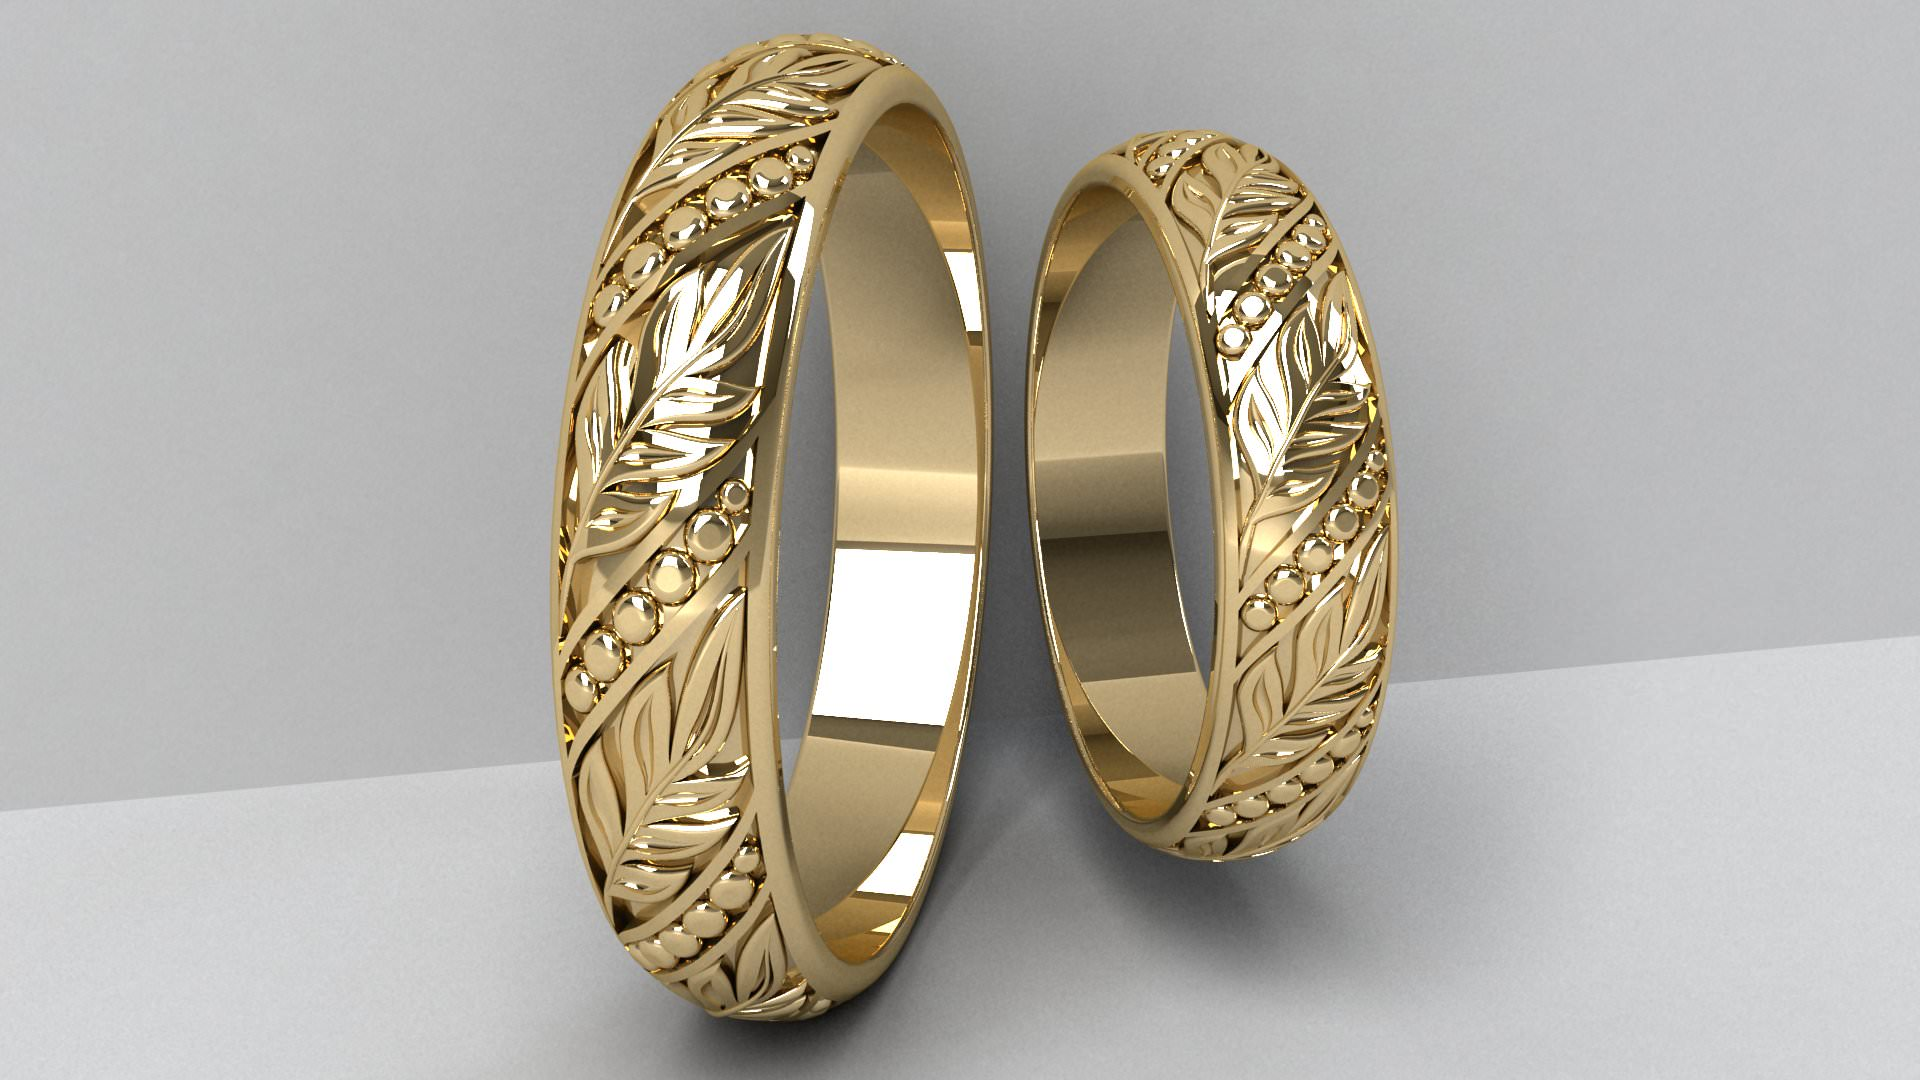 man s proposes diamond news to wedding printing printed with design rings uses custom ring